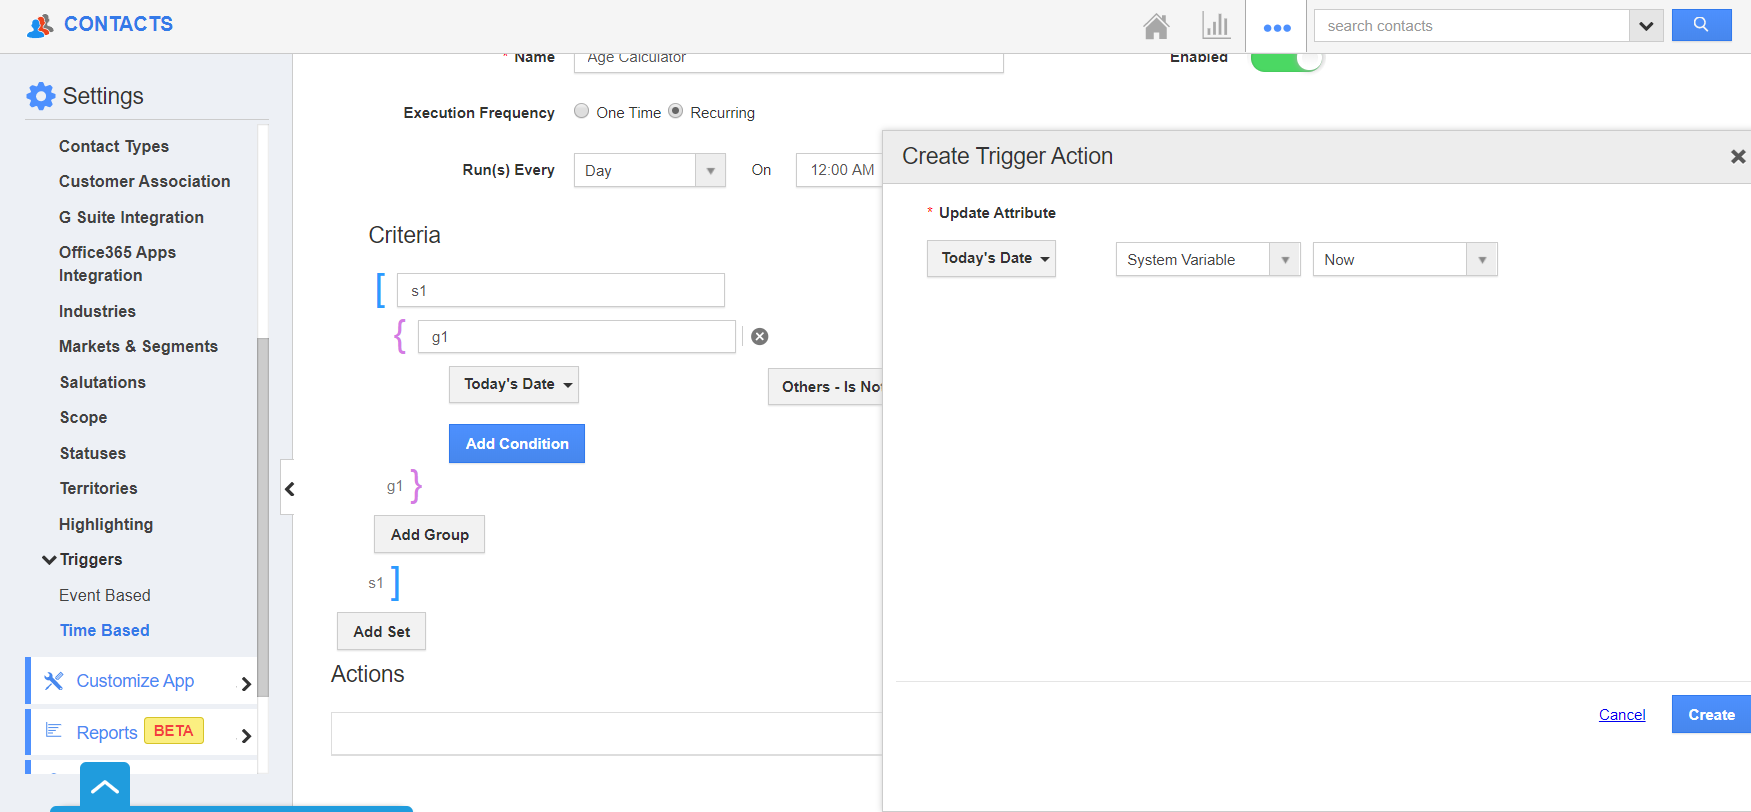 Create Trigger Action